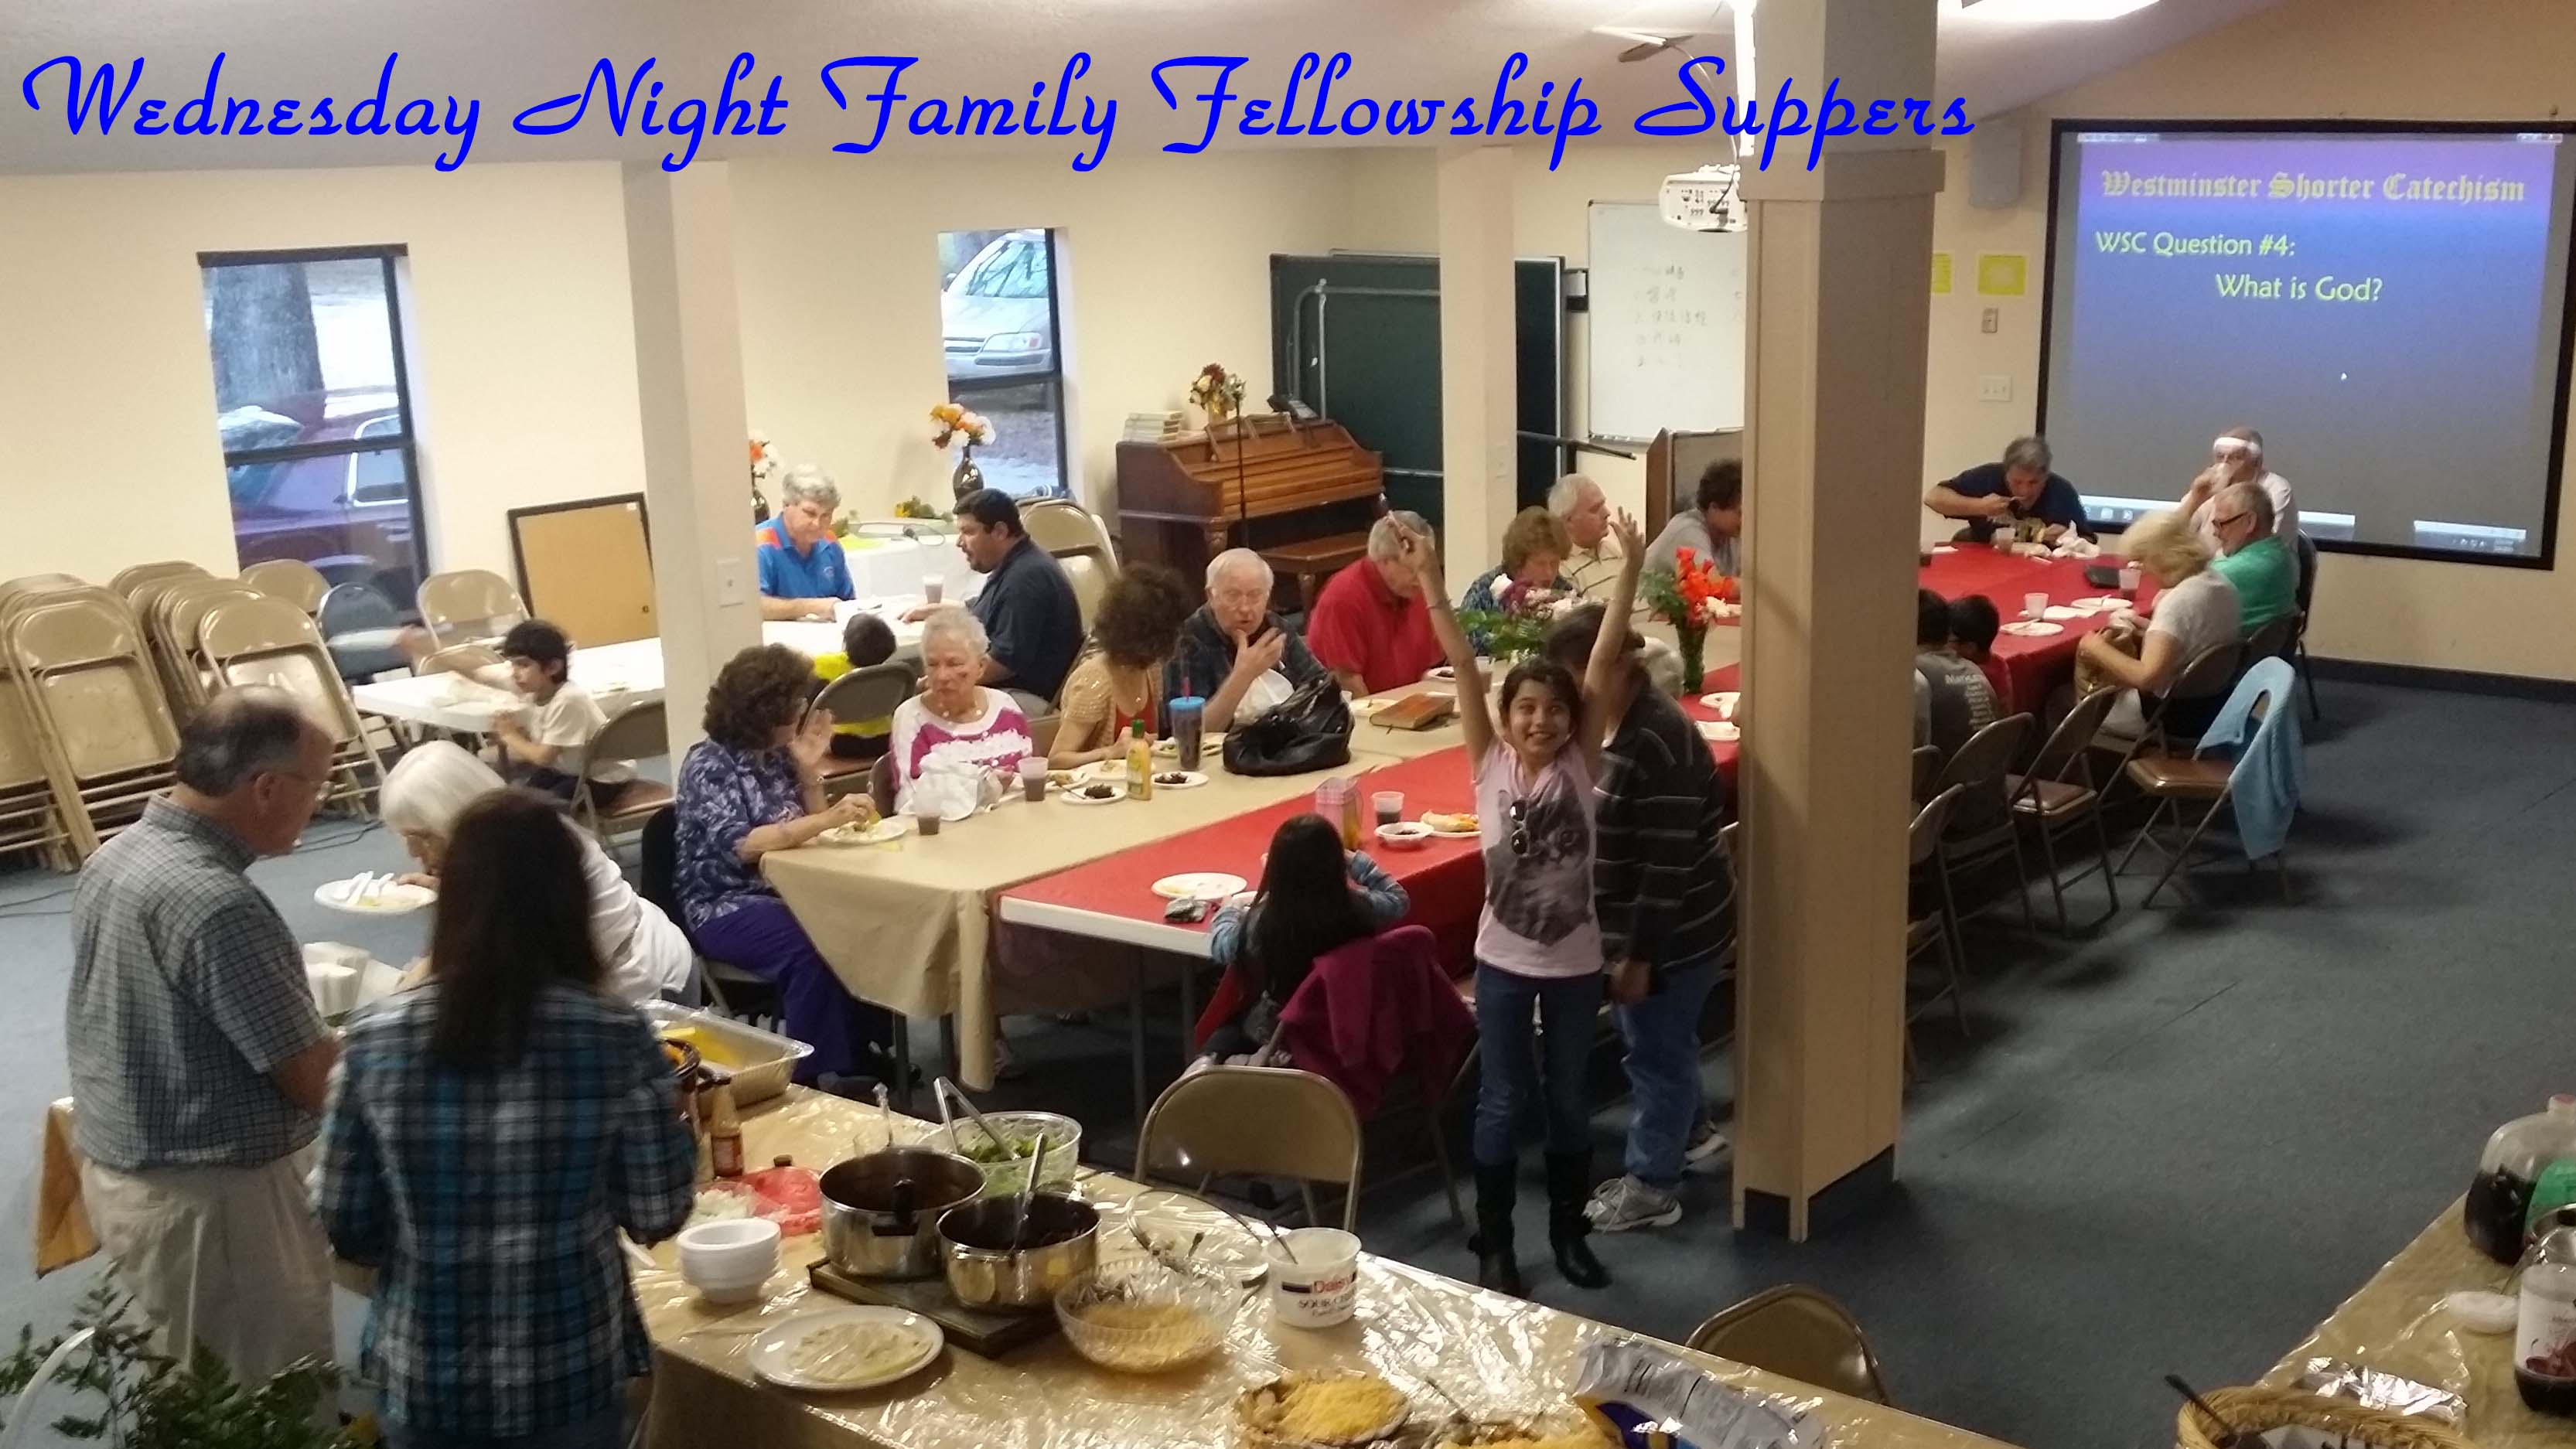 Wednesday Night Fellowship Dinner